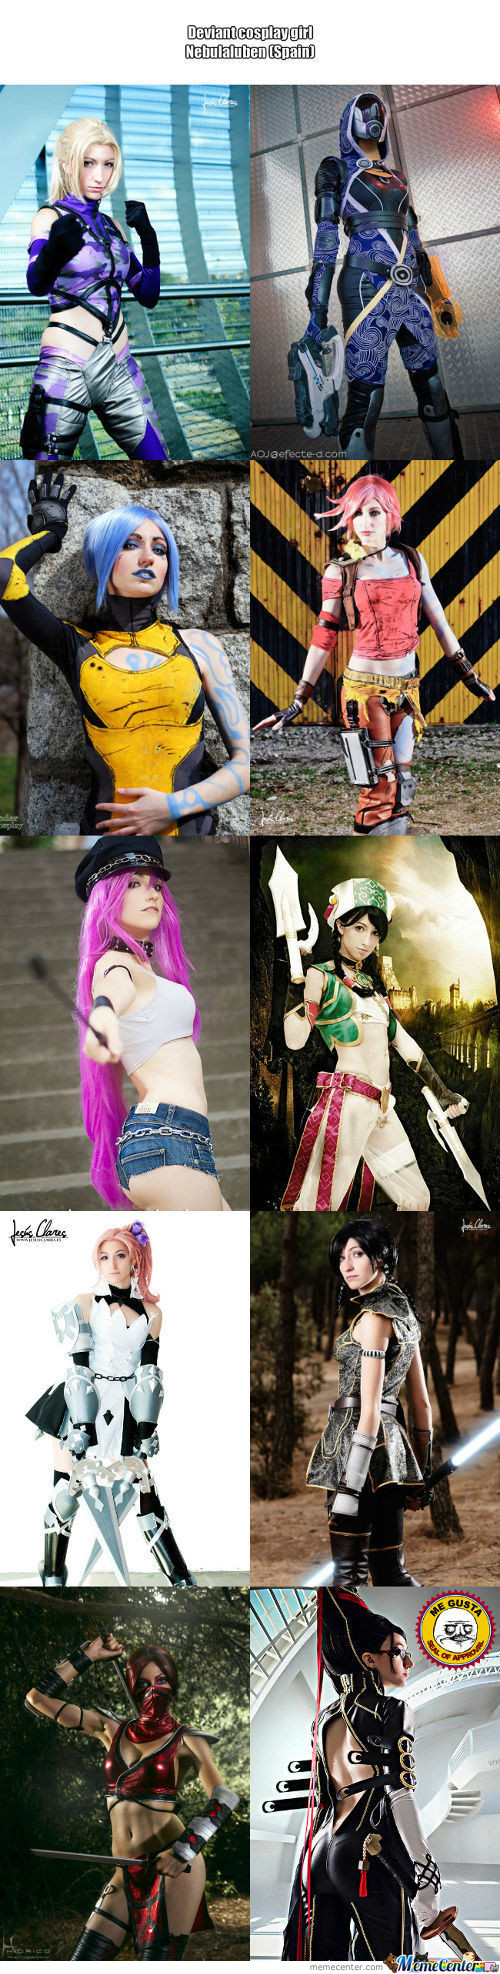 Cosplay Girl 72 : Nebulaluben (Spain)